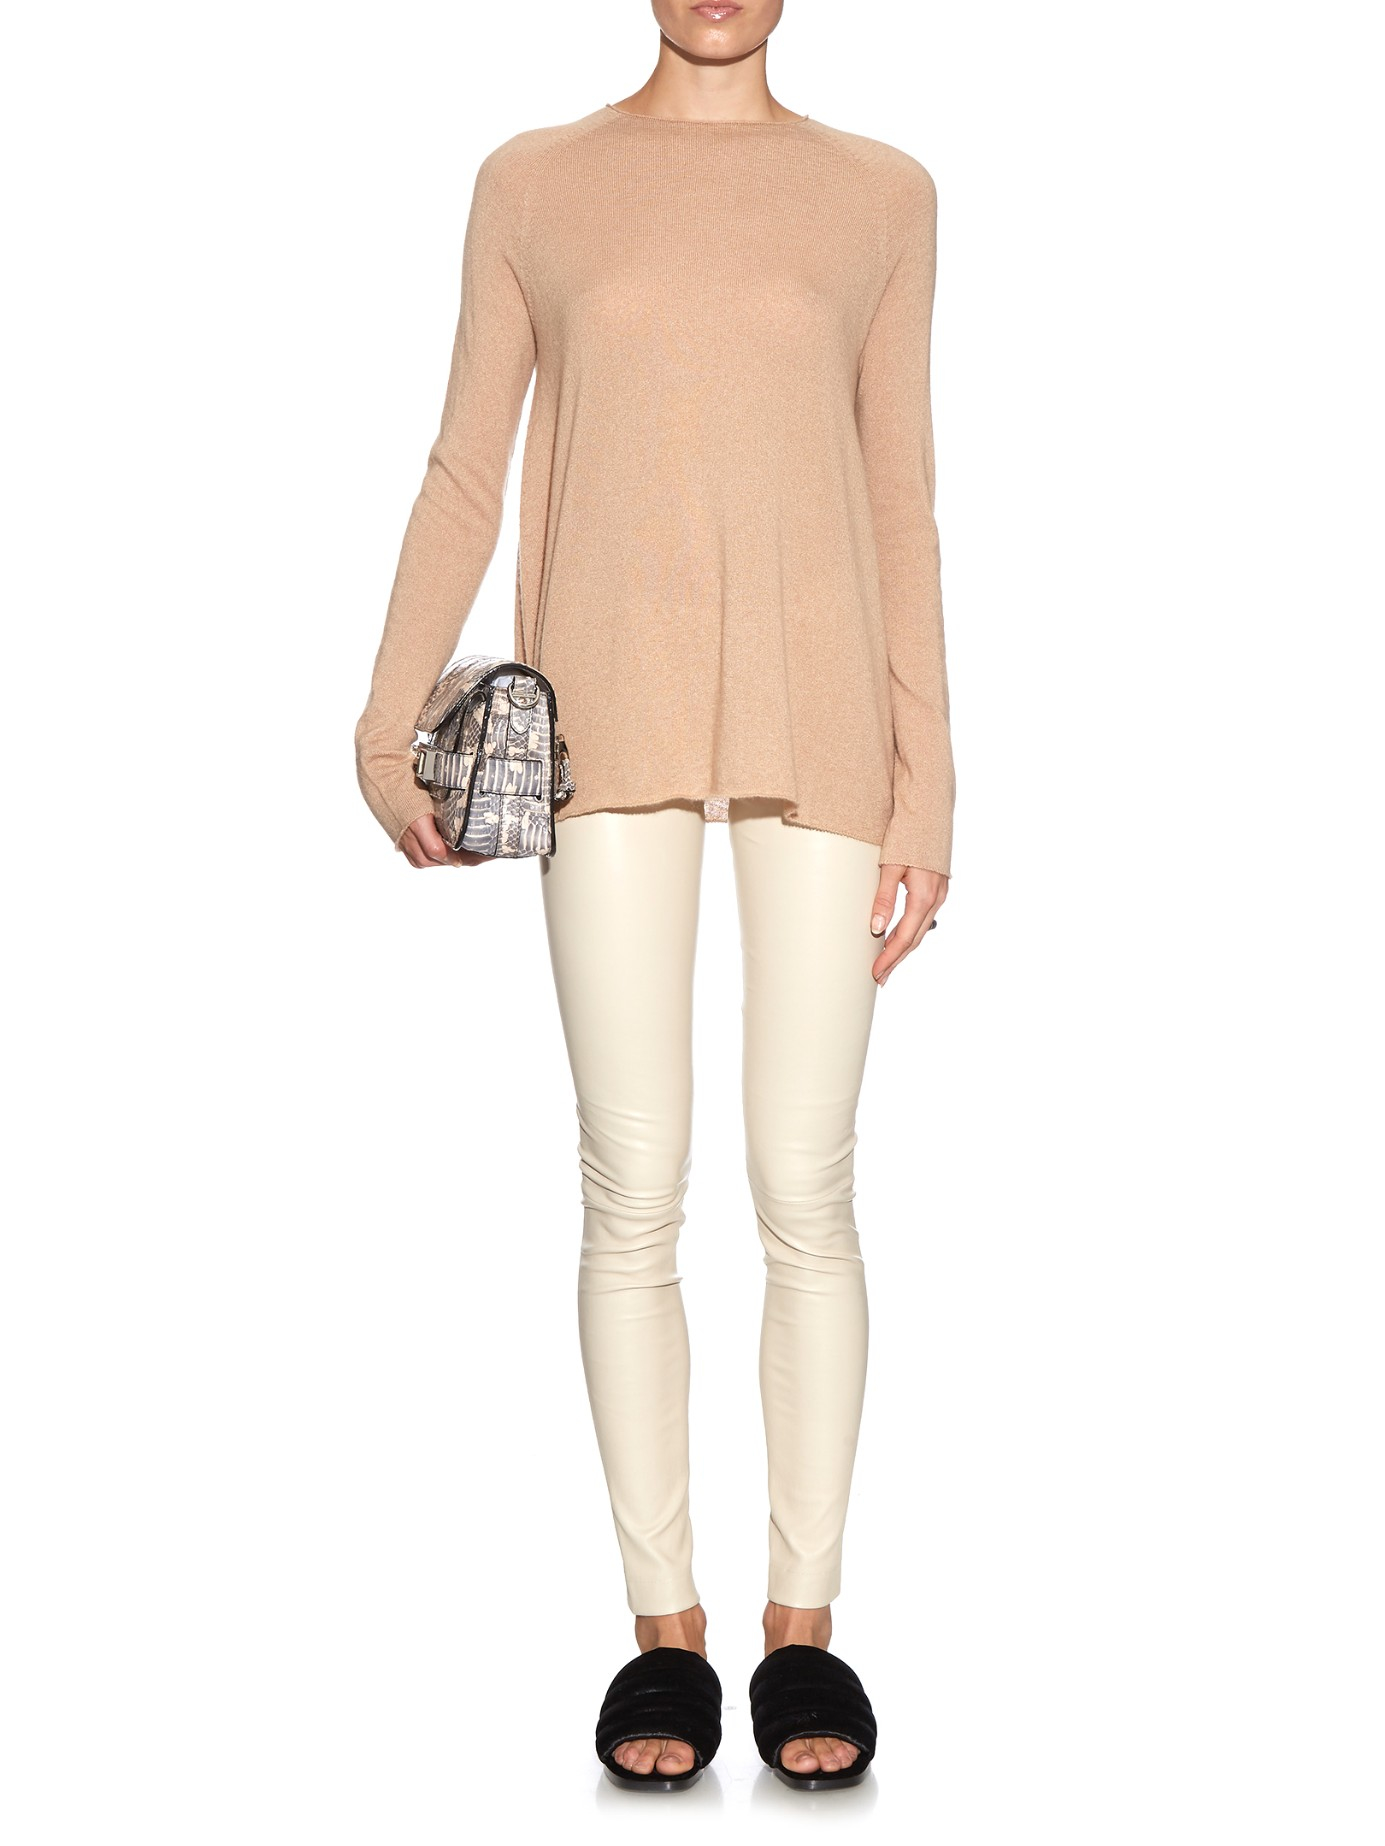 6bbeeb31e1f28 The Row Moto Leather Leggings in Natural - Lyst